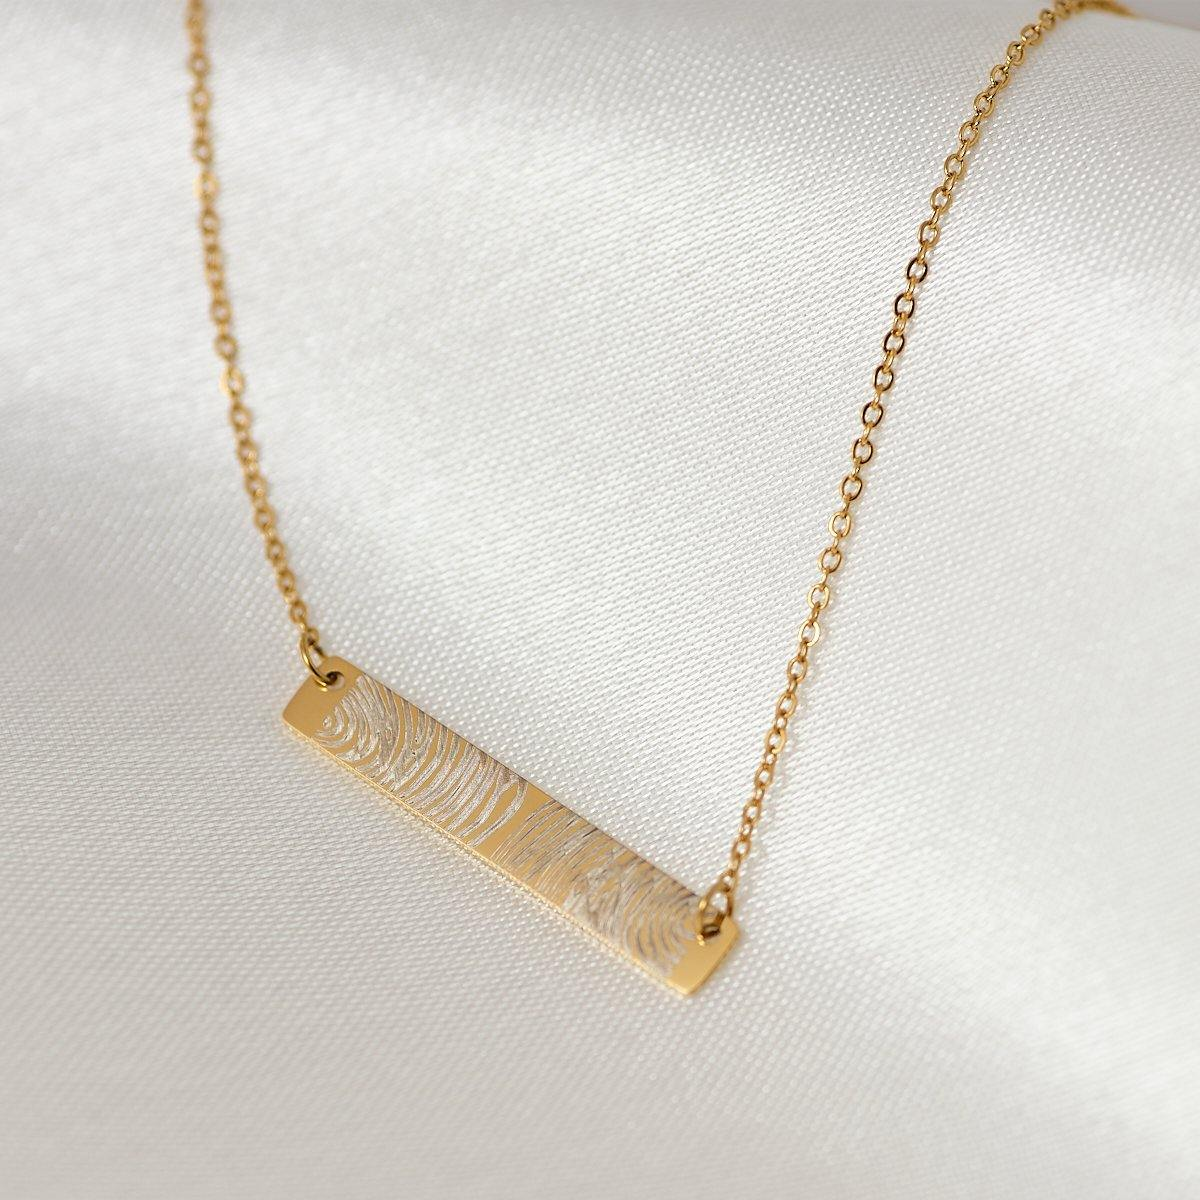 Bar Fingerprint Necklace - Duton Gepersonaliseerde sieraden